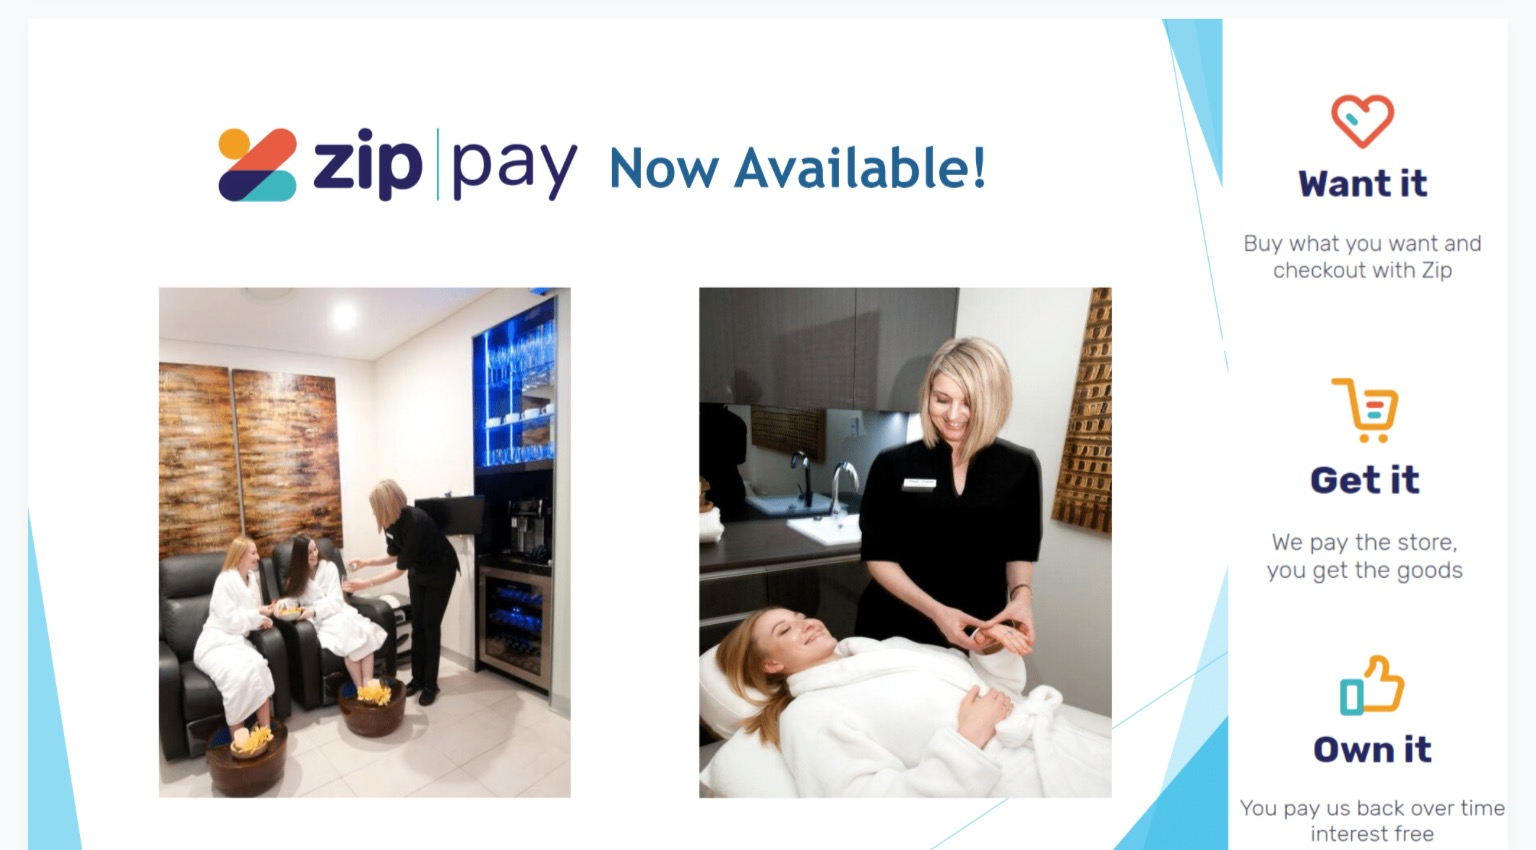 ZIP PAY is now available at Simply Elegant